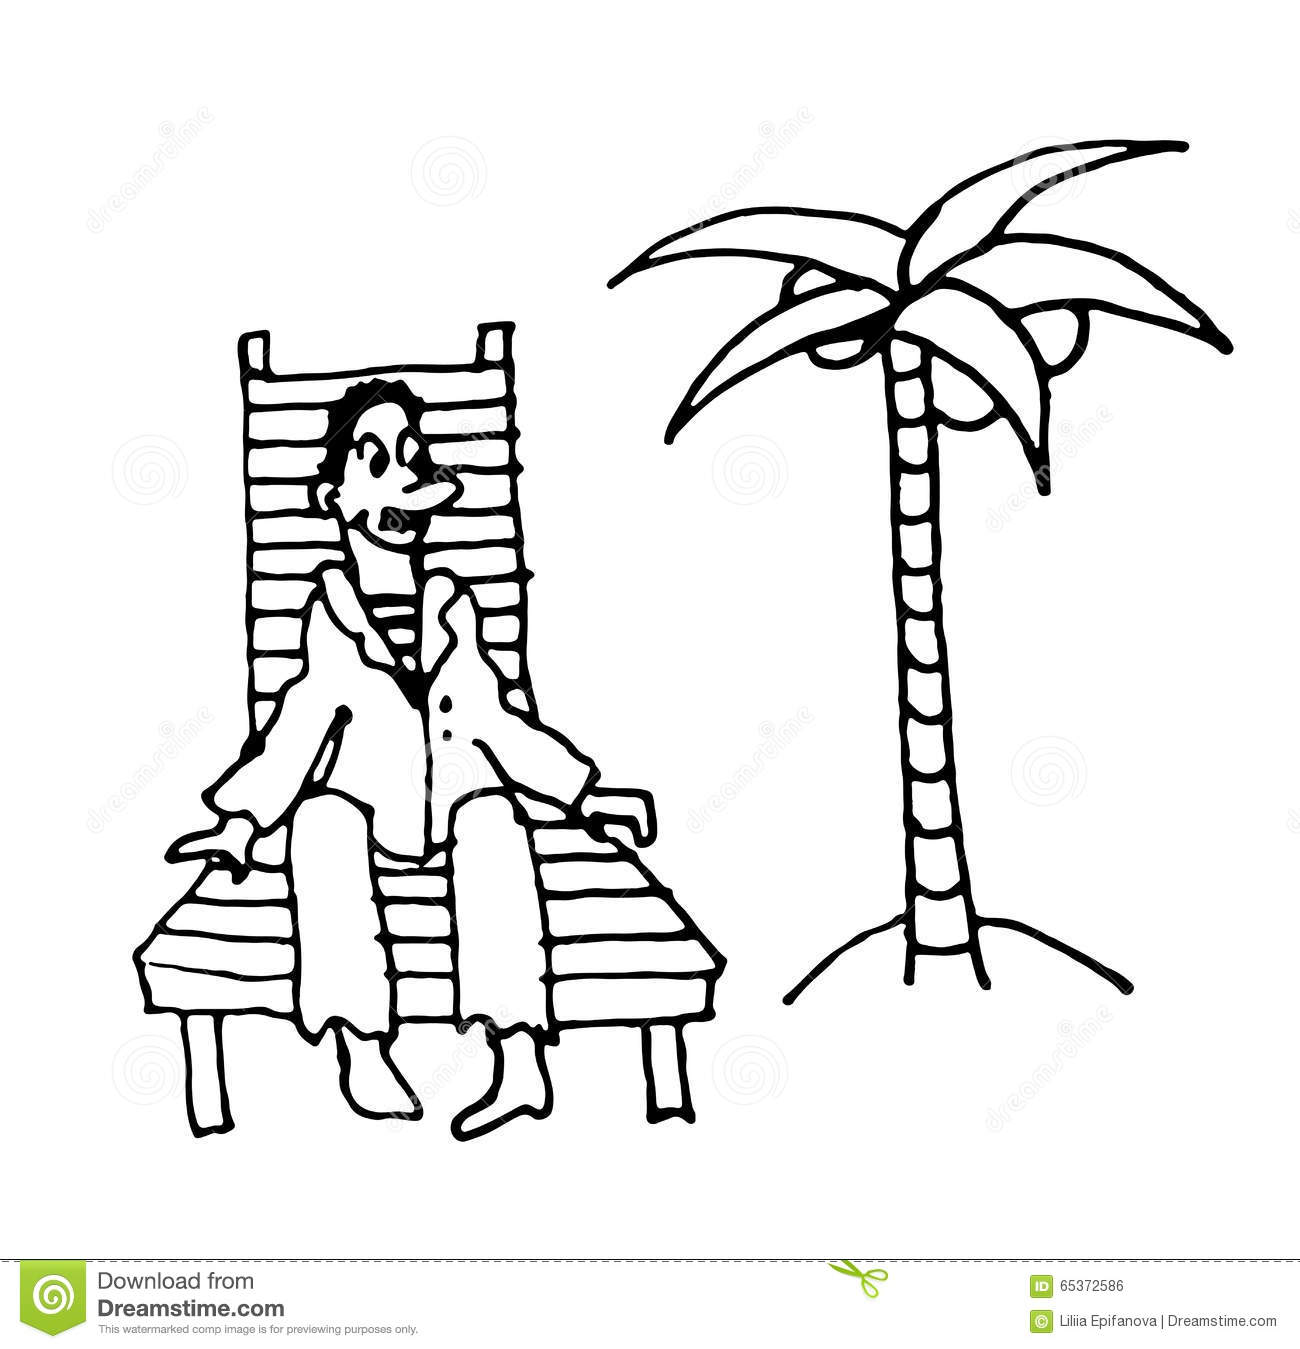 Sailor Man In A Suit Rests On A Wooden Deck Chair Under A